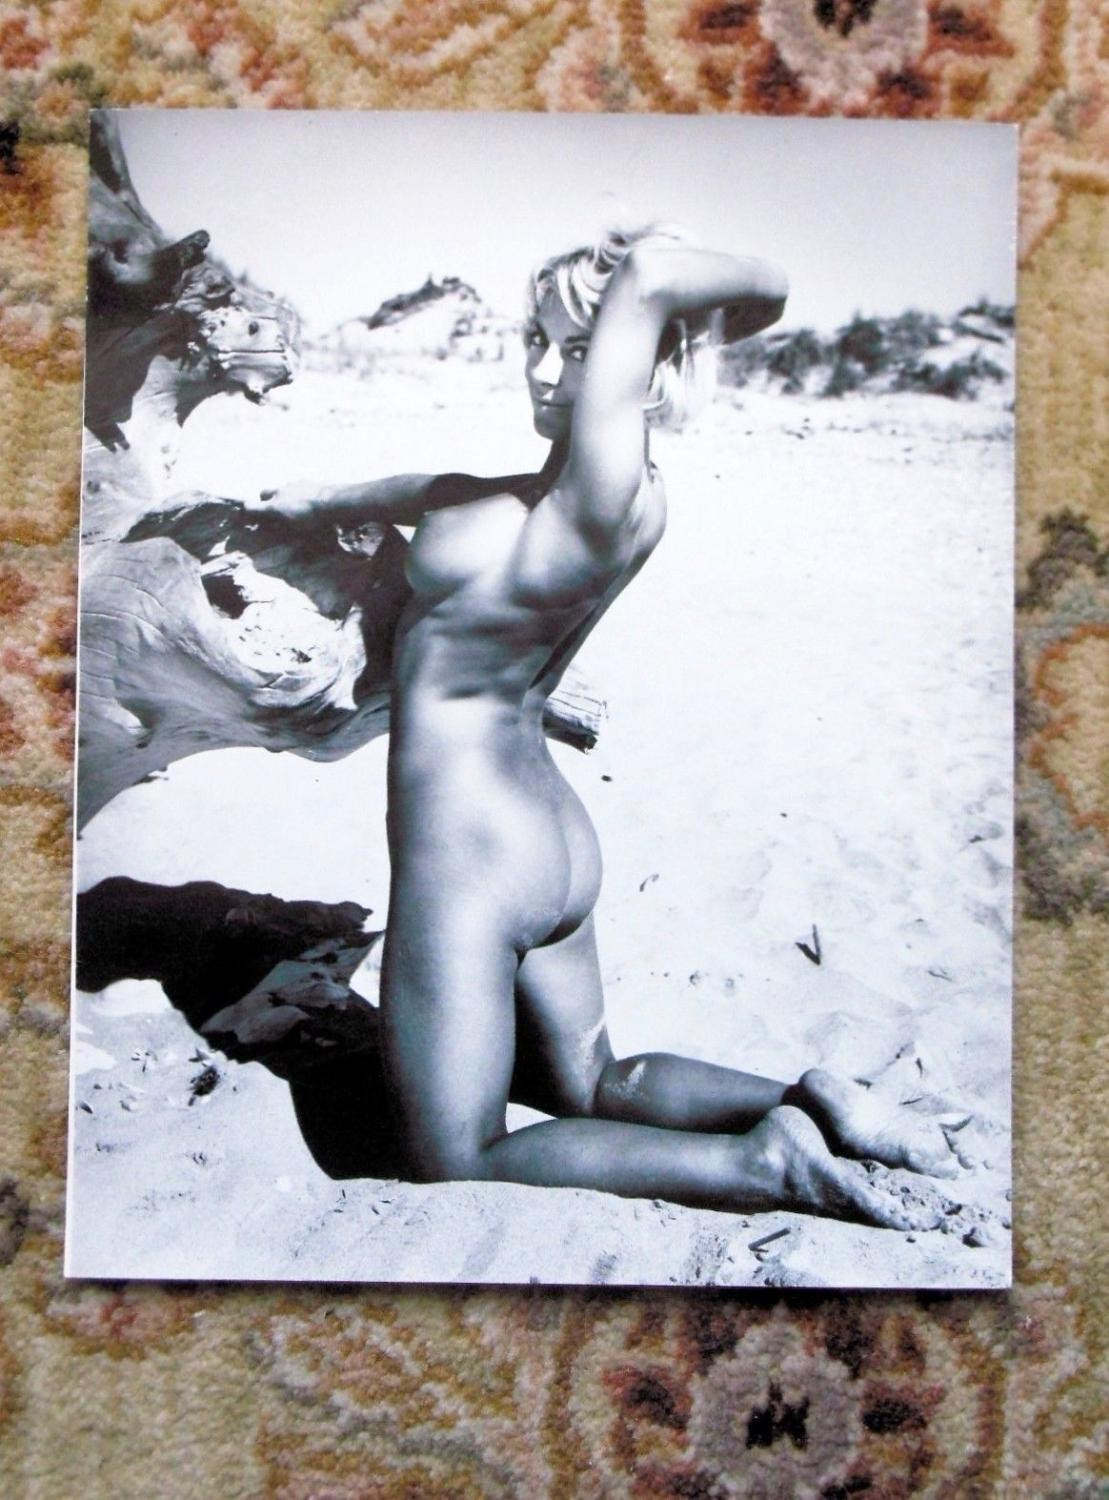 1960s ORIGINAL VINTAGE NUDE PHOTO by JOHN BASHAM of YOUNG BLONDE WOMAN NUDIST Naked on Beach: John ...